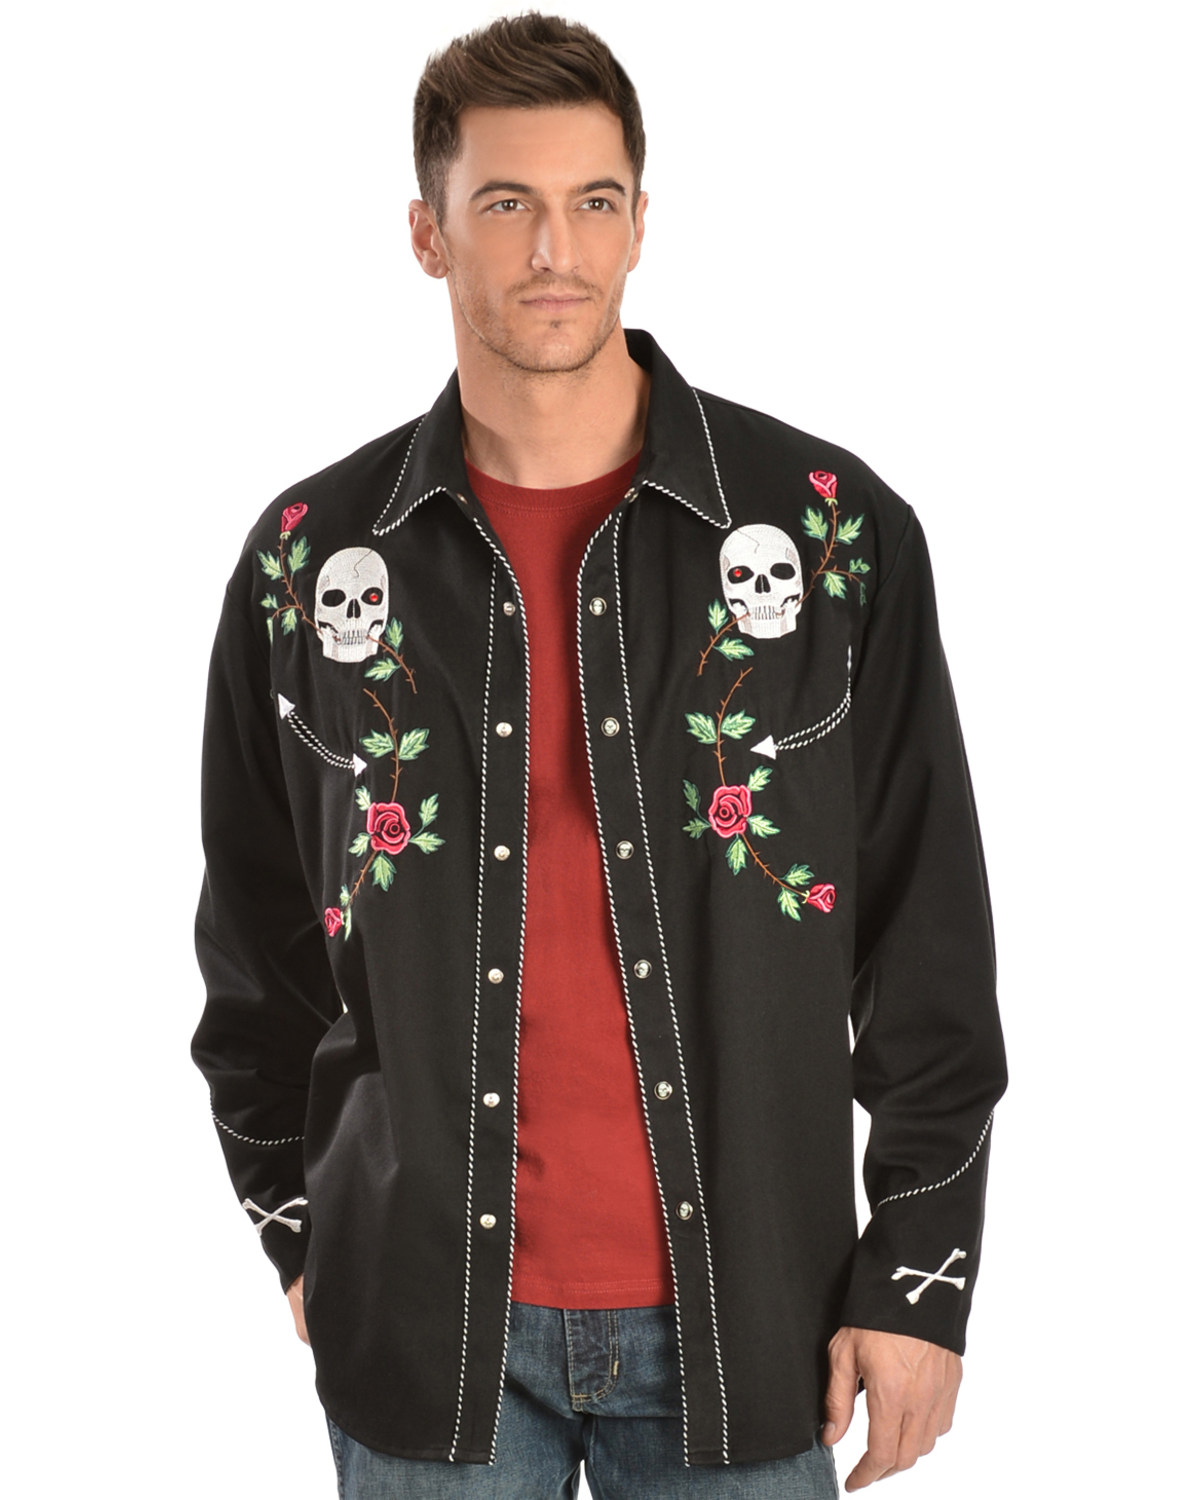 ae0a9bcf19ace7 Zoomed Image Scully Men's Skulls and Roses Western Shirt, Black, ...